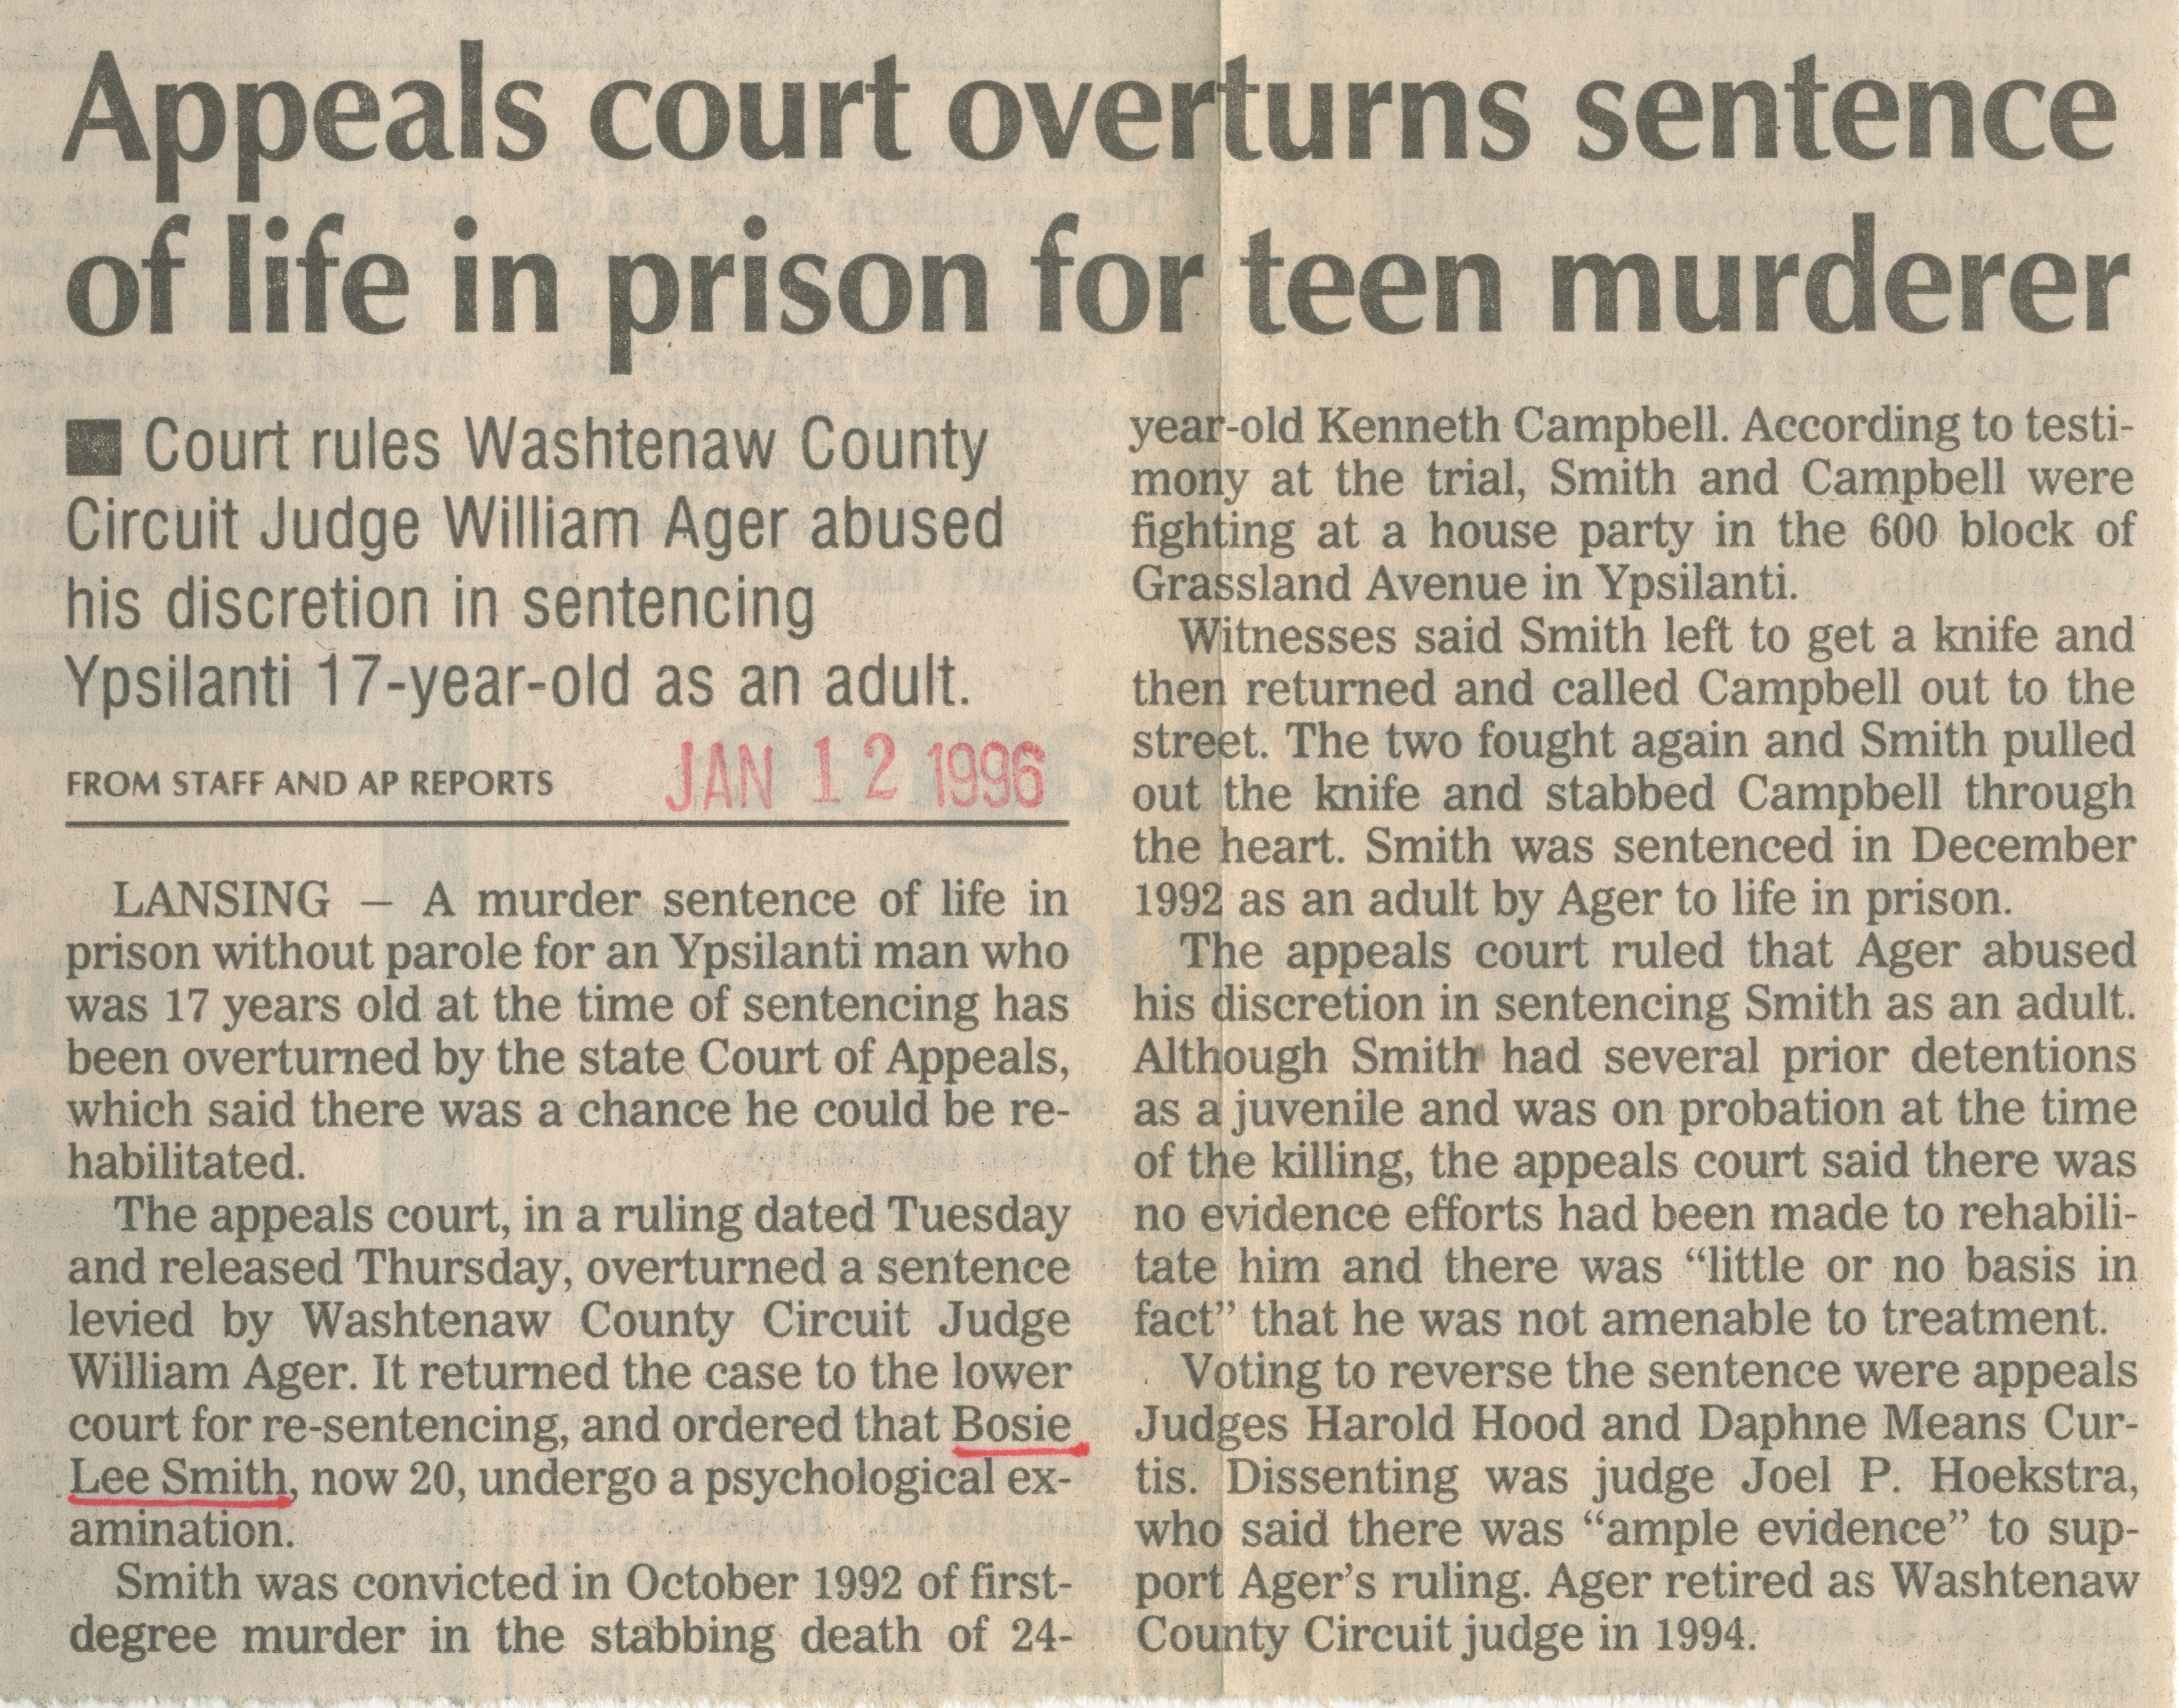 Appeals court overturns sentence of life in prison for teen murderer image